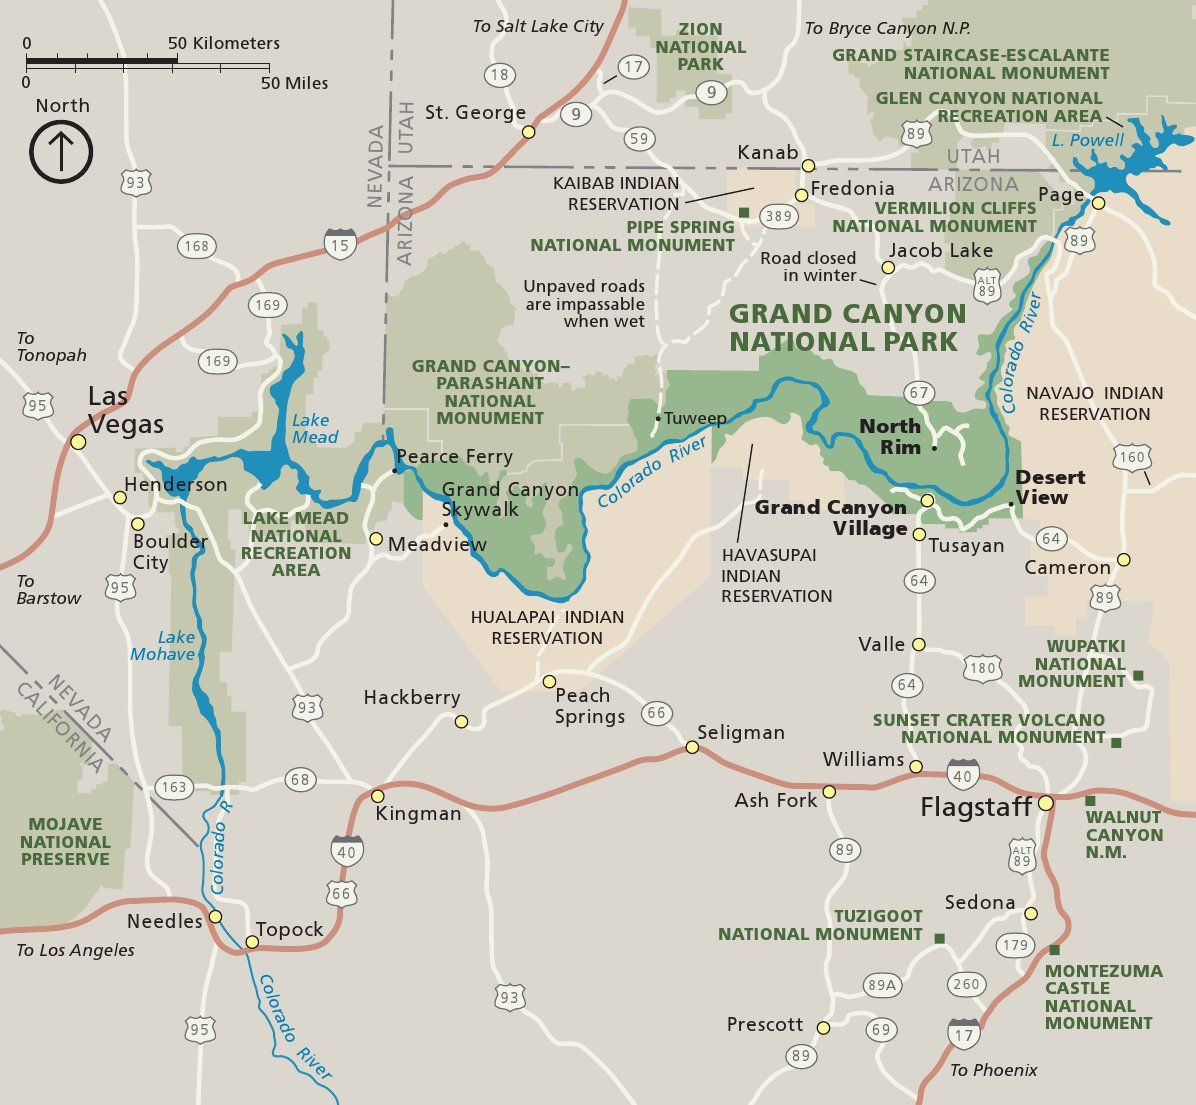 Regional Map Of The Grand Canyon Area Visit The Original Site To - Map of grand canyon